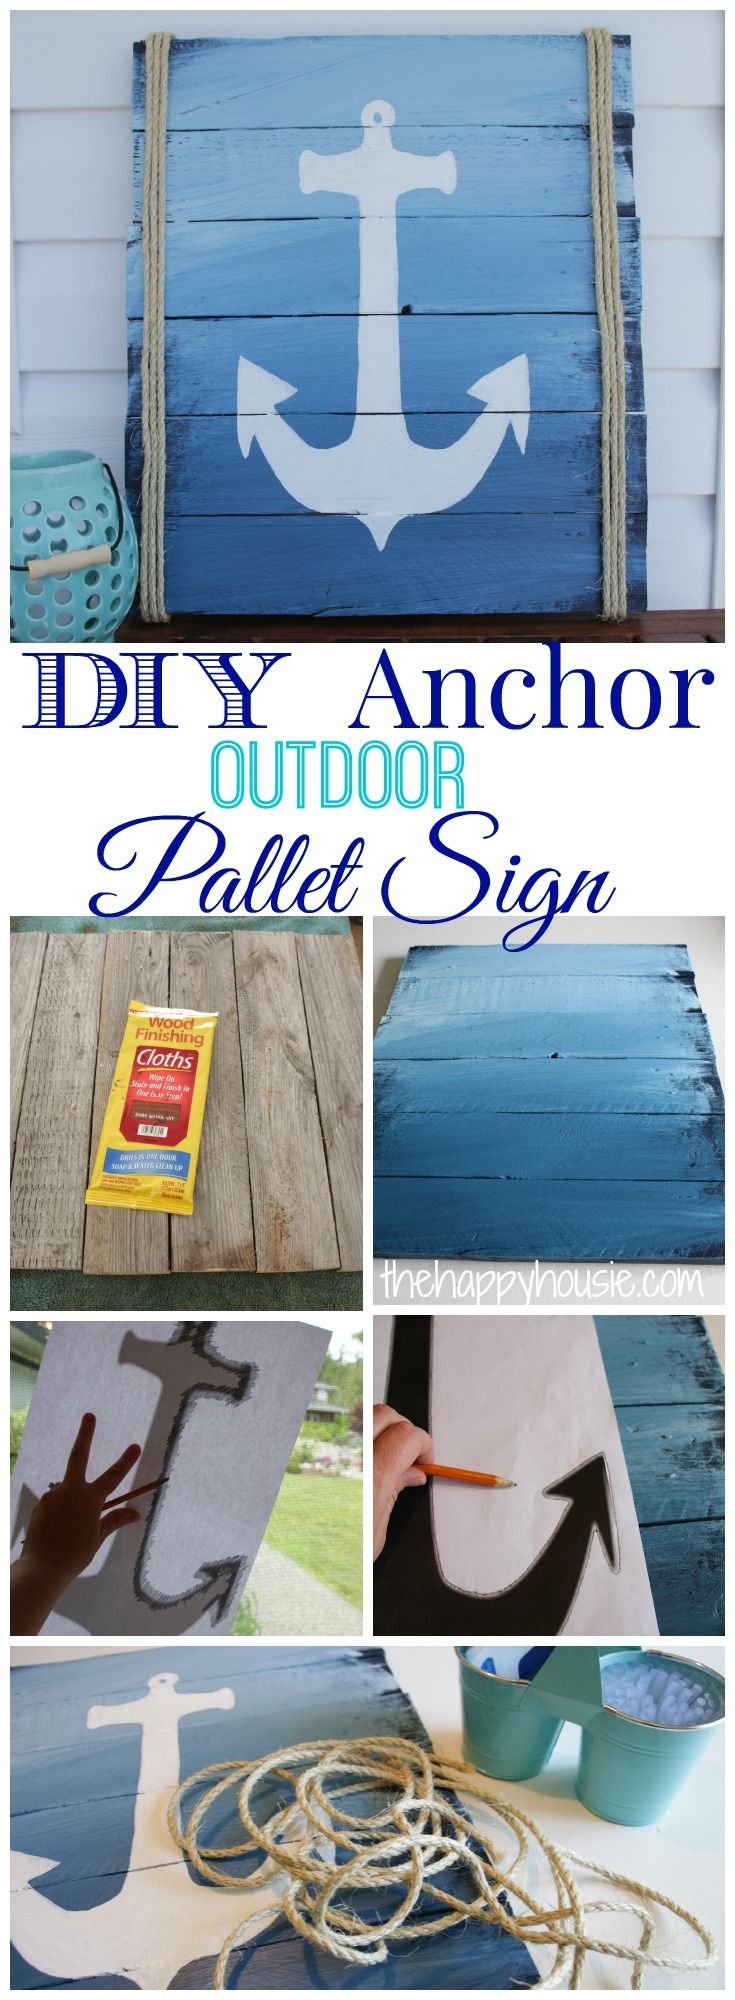 DIY Anchor Outdoor Pallet Sign at thehappyhousie.com